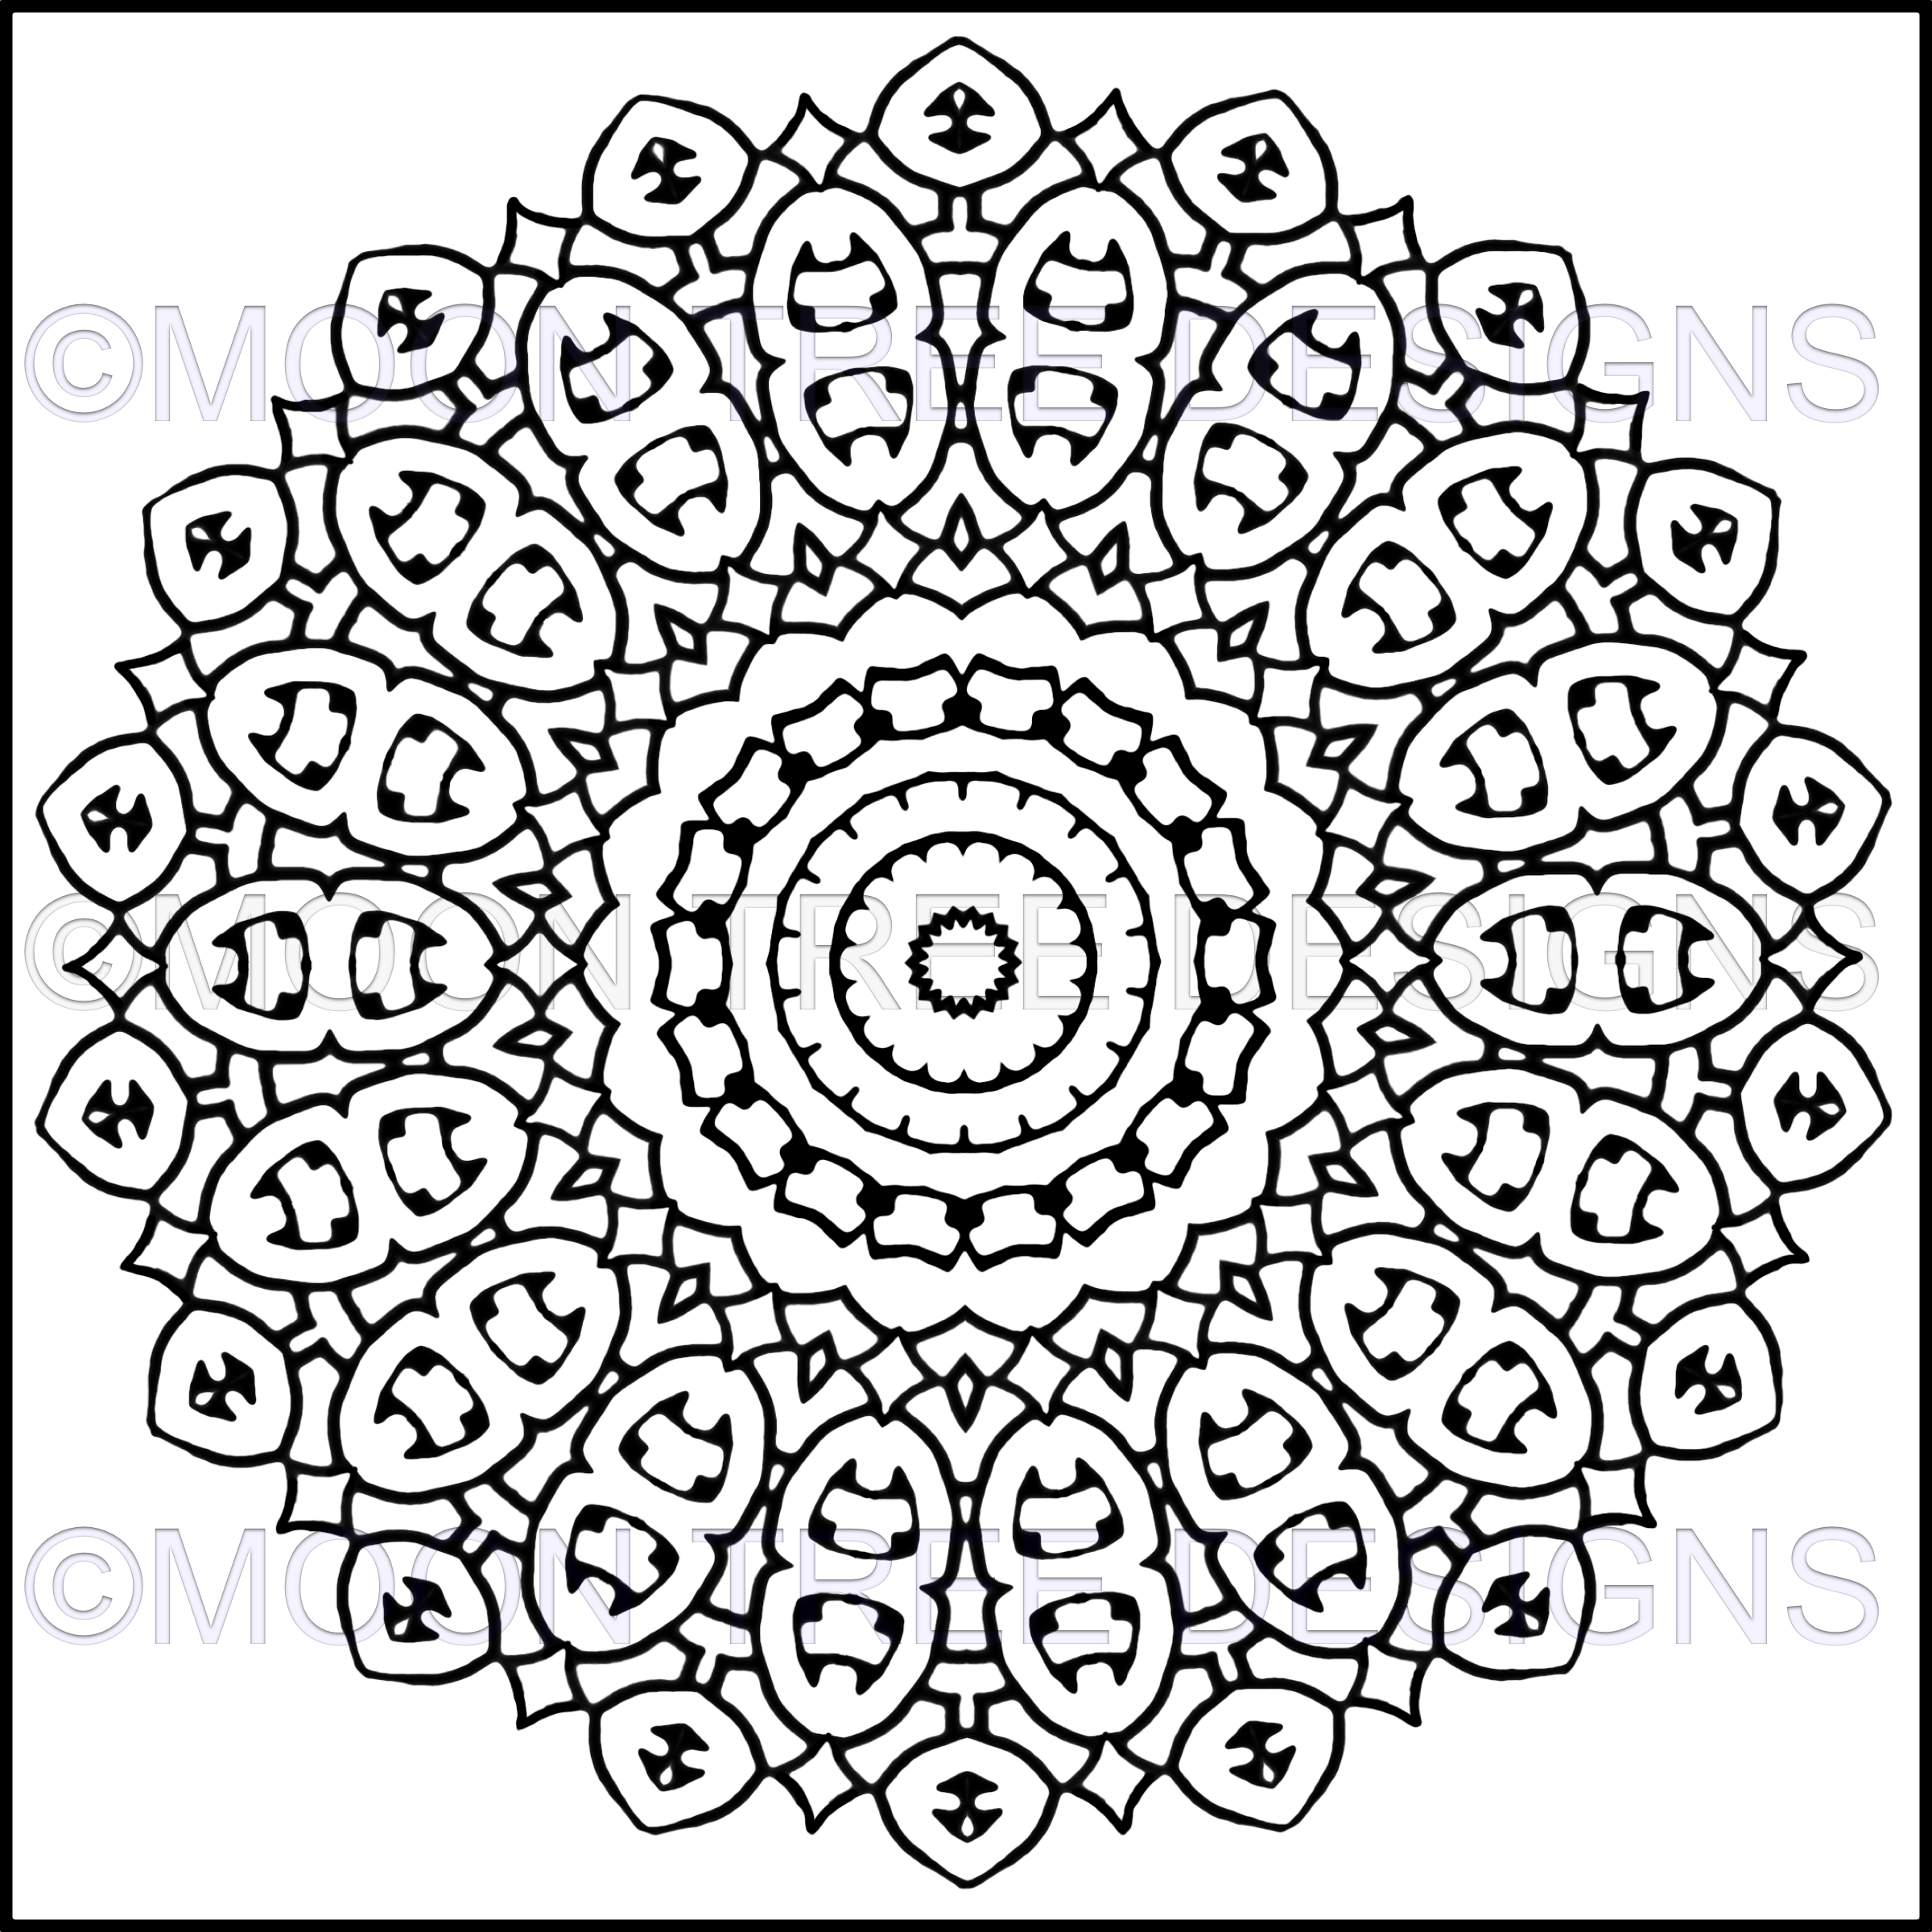 A Coloring Book that can be downloaded and colored. You can print ...